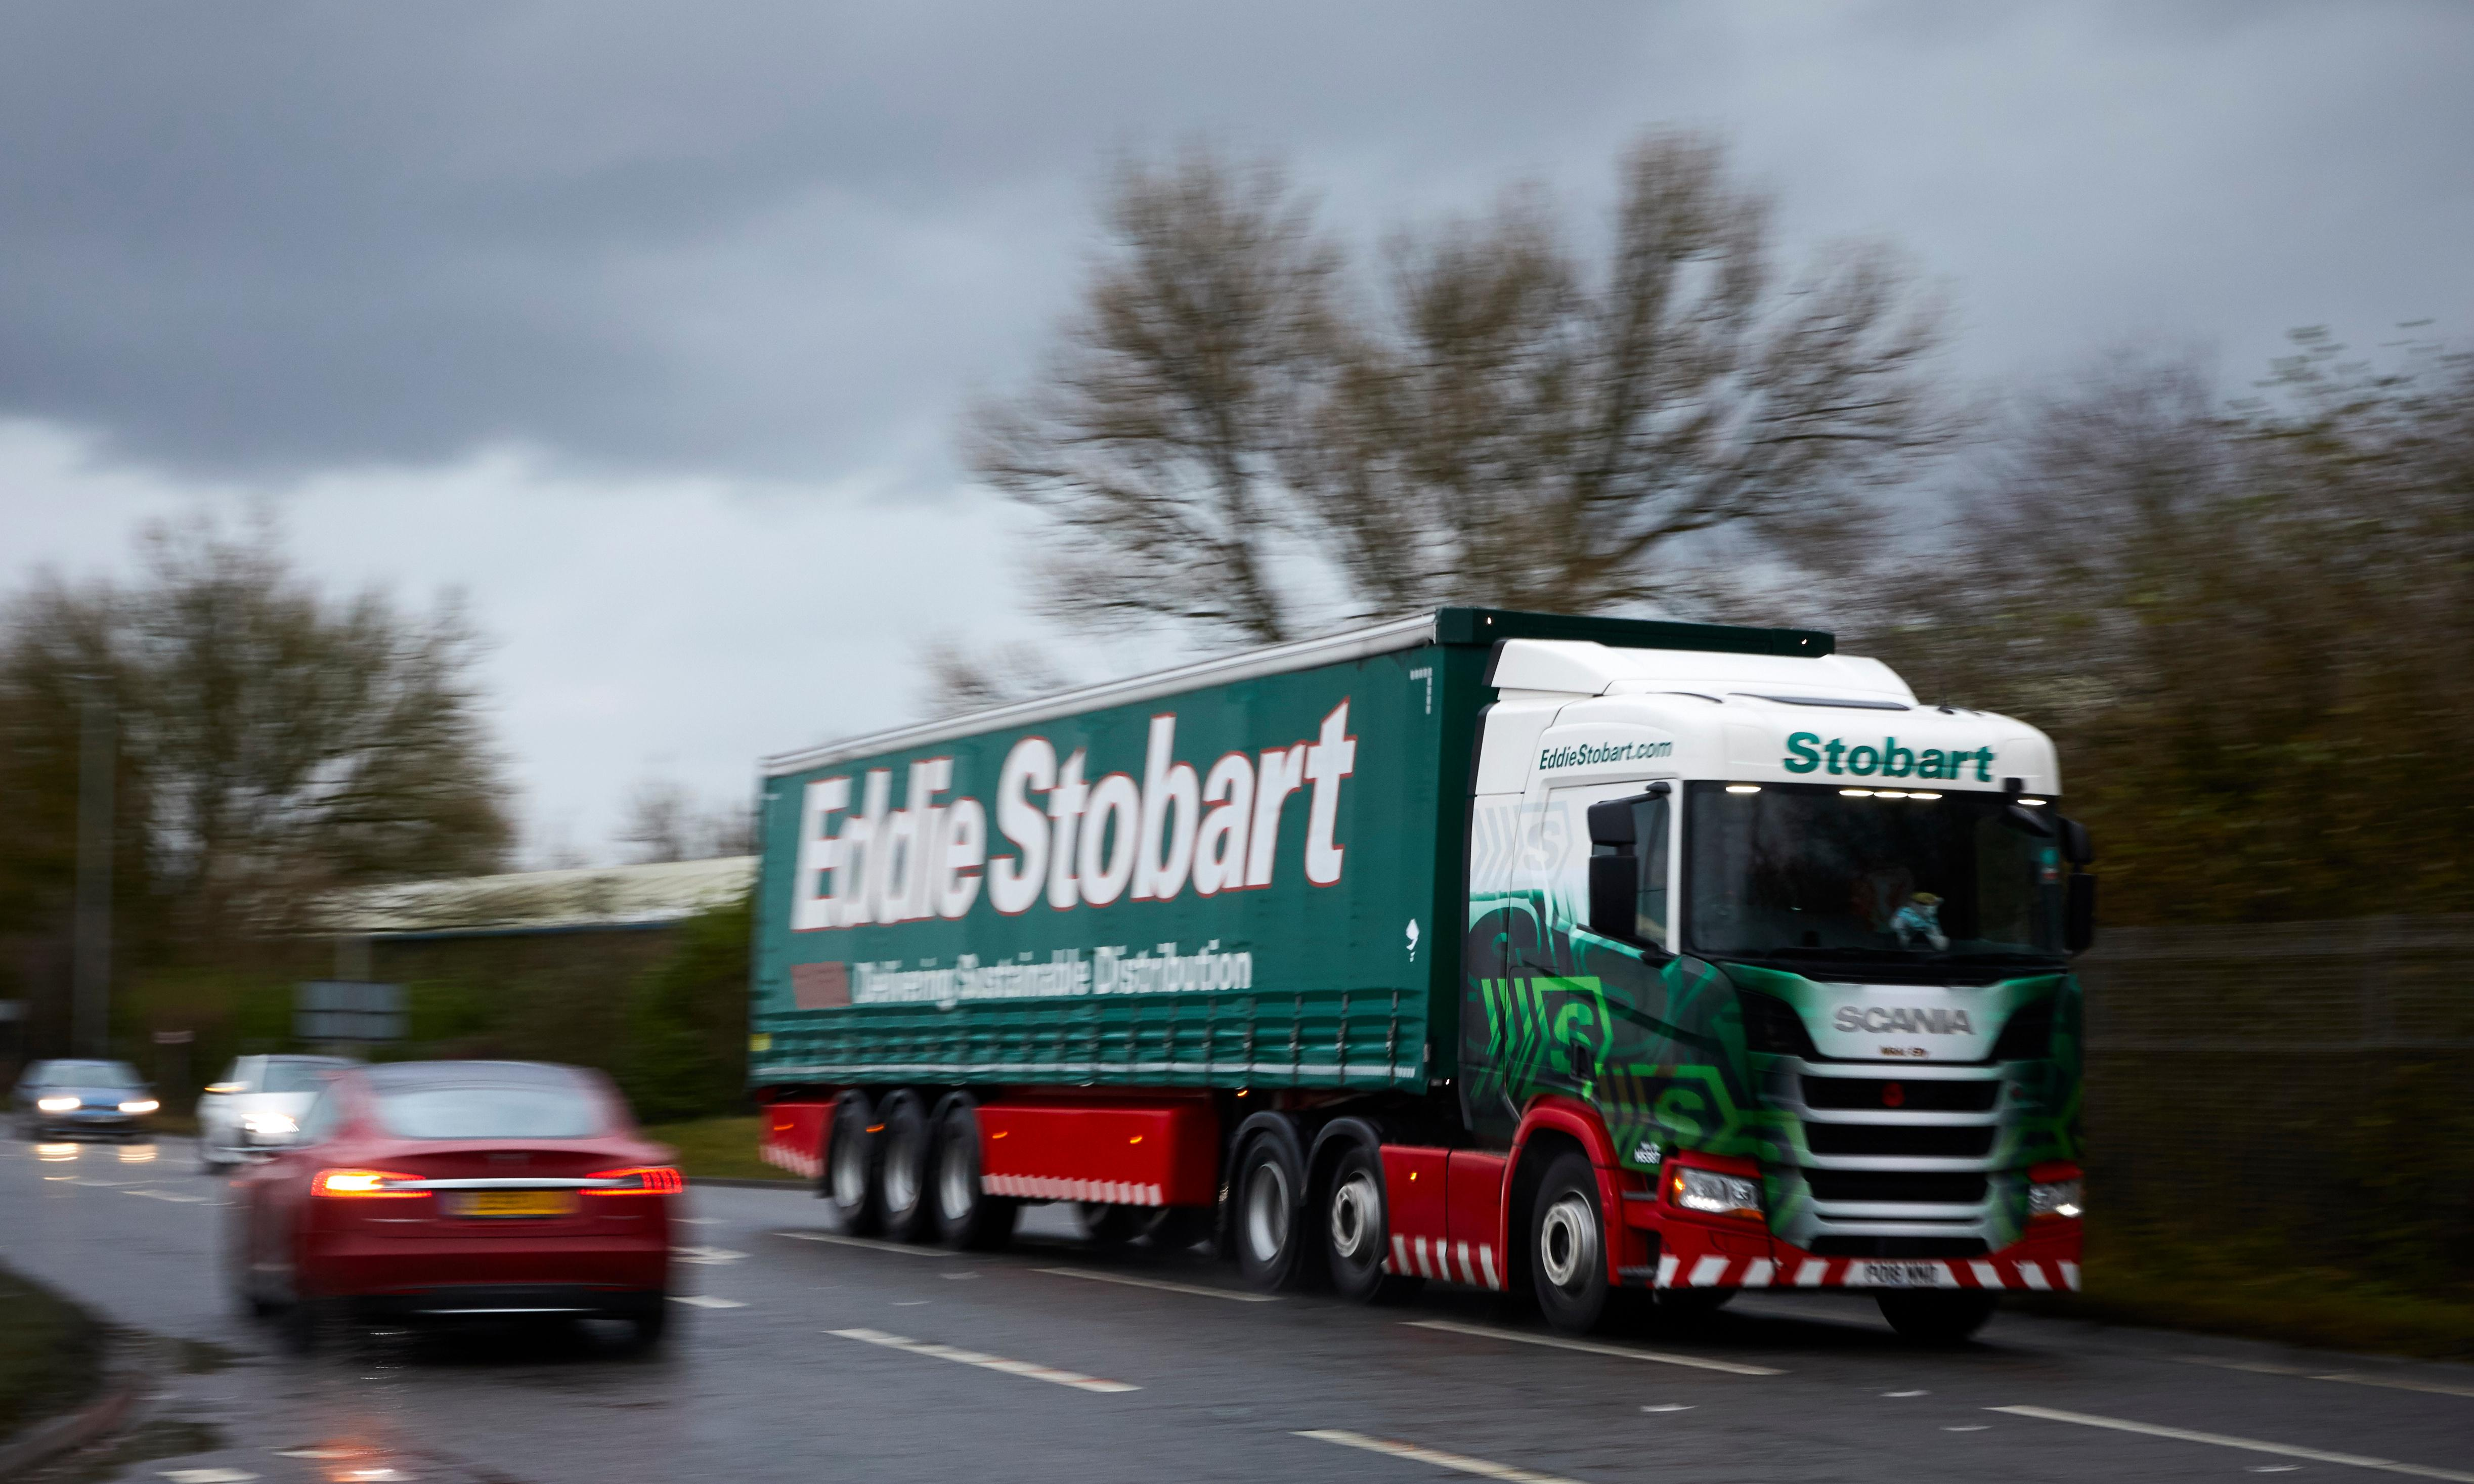 Eddie Stobart wins reprieve as ex-owners bail out haulage firm